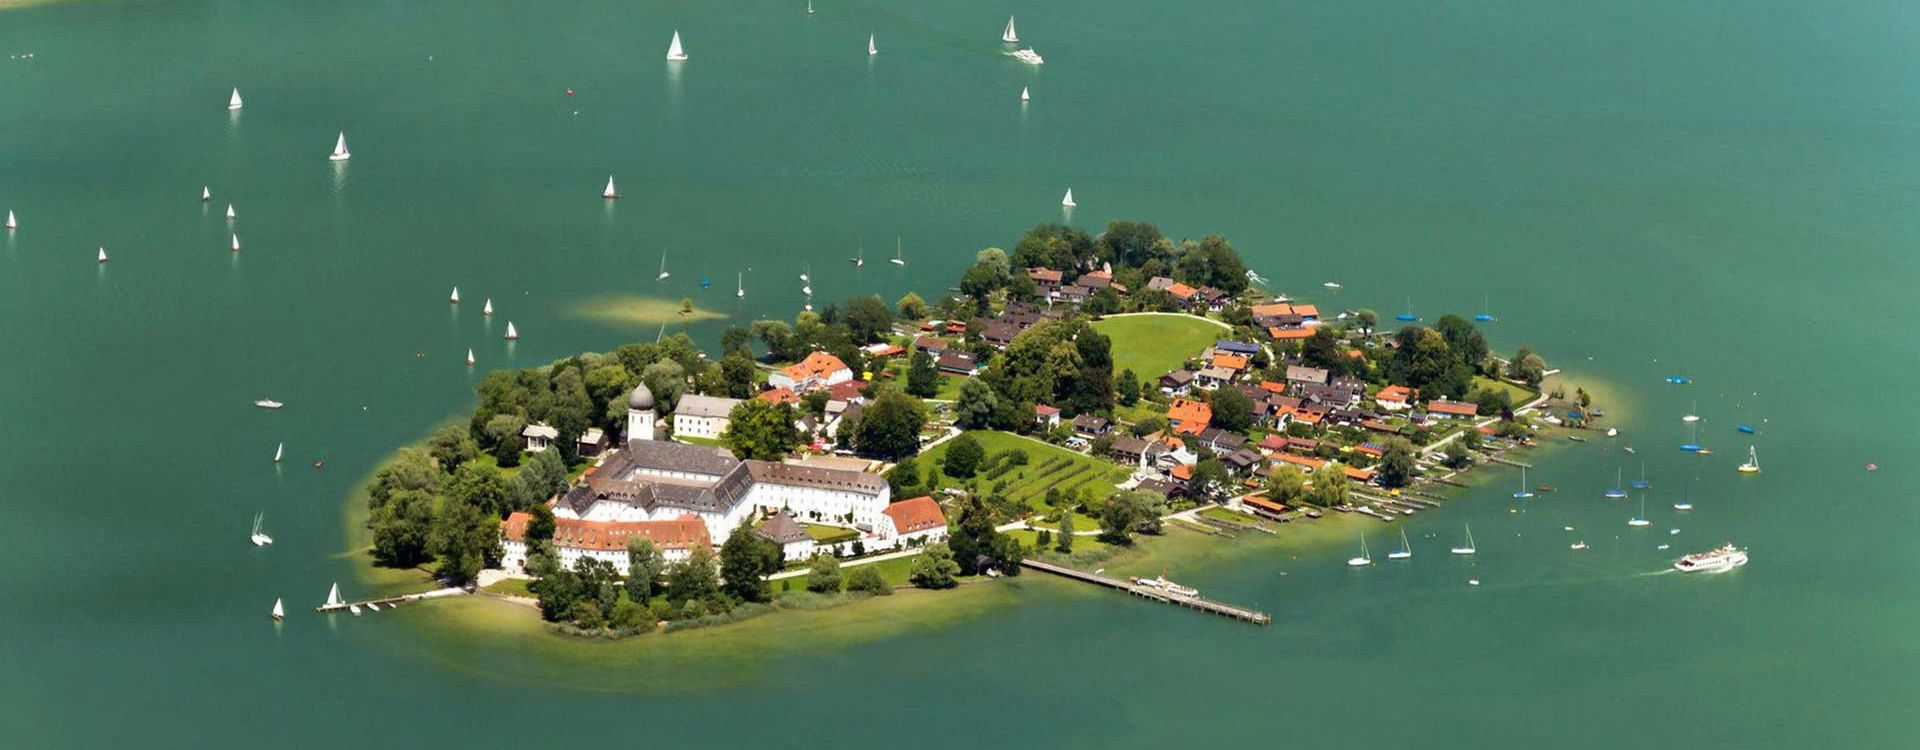 Fraueninsel am Chiemsee